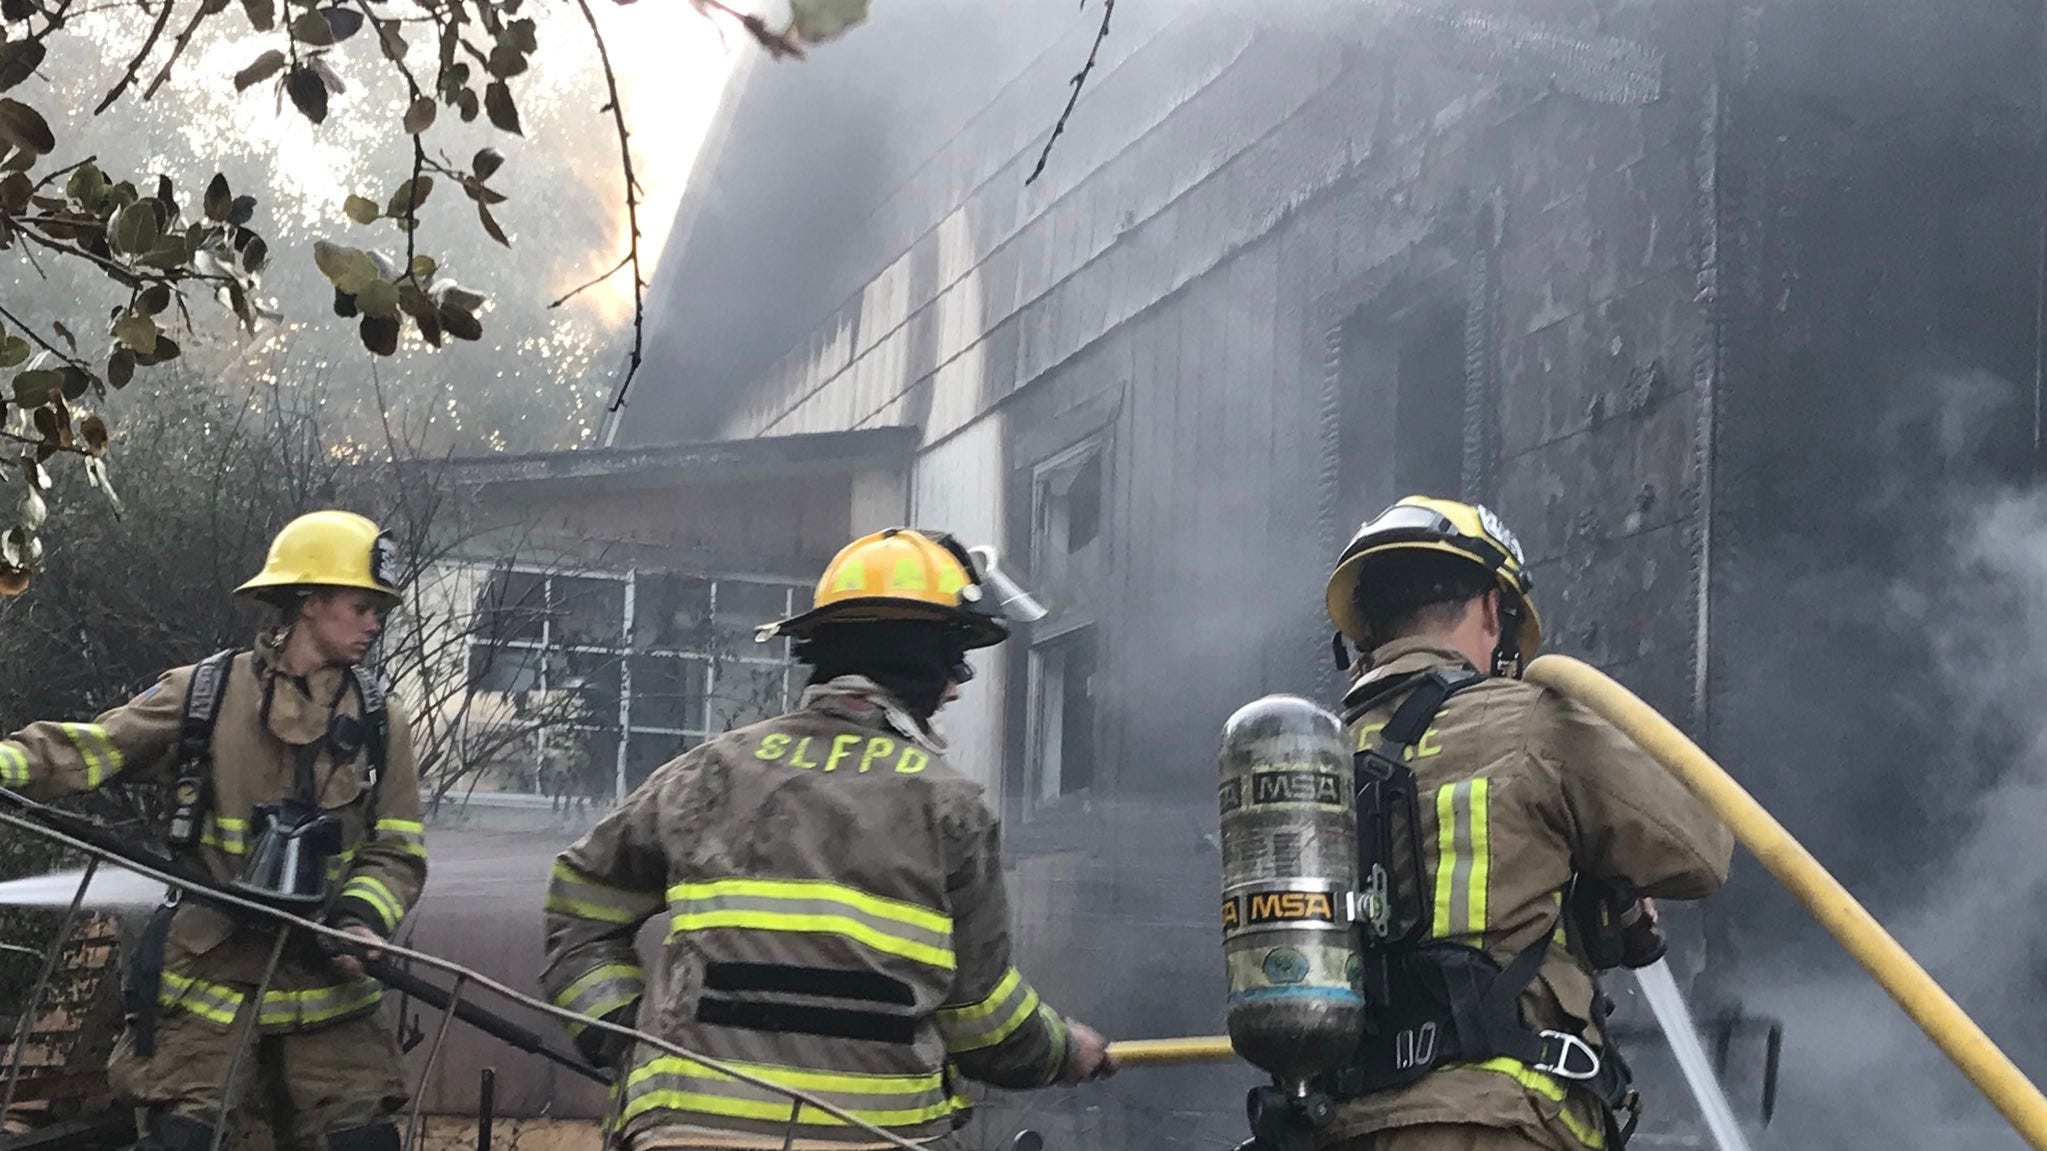 Firefighters at the scene of house fire at Lassen Street and Pine Ave in Shasta Lake. No one was injured in the fire, which broke out around 7:30 a.m.